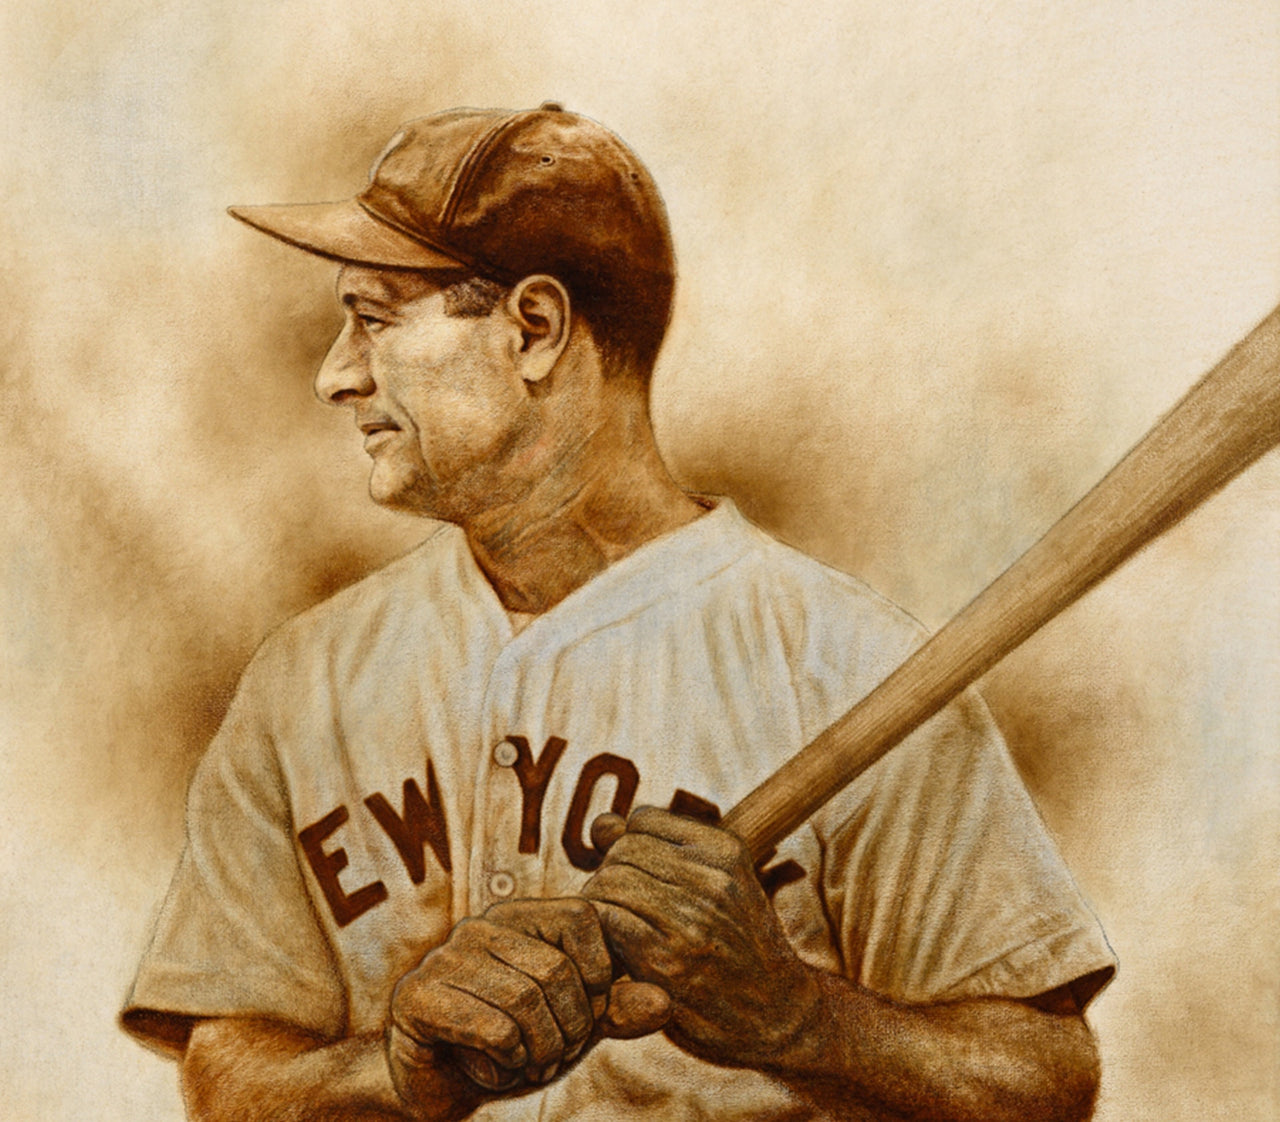 Gehrig - Oil on Canvas 16x20